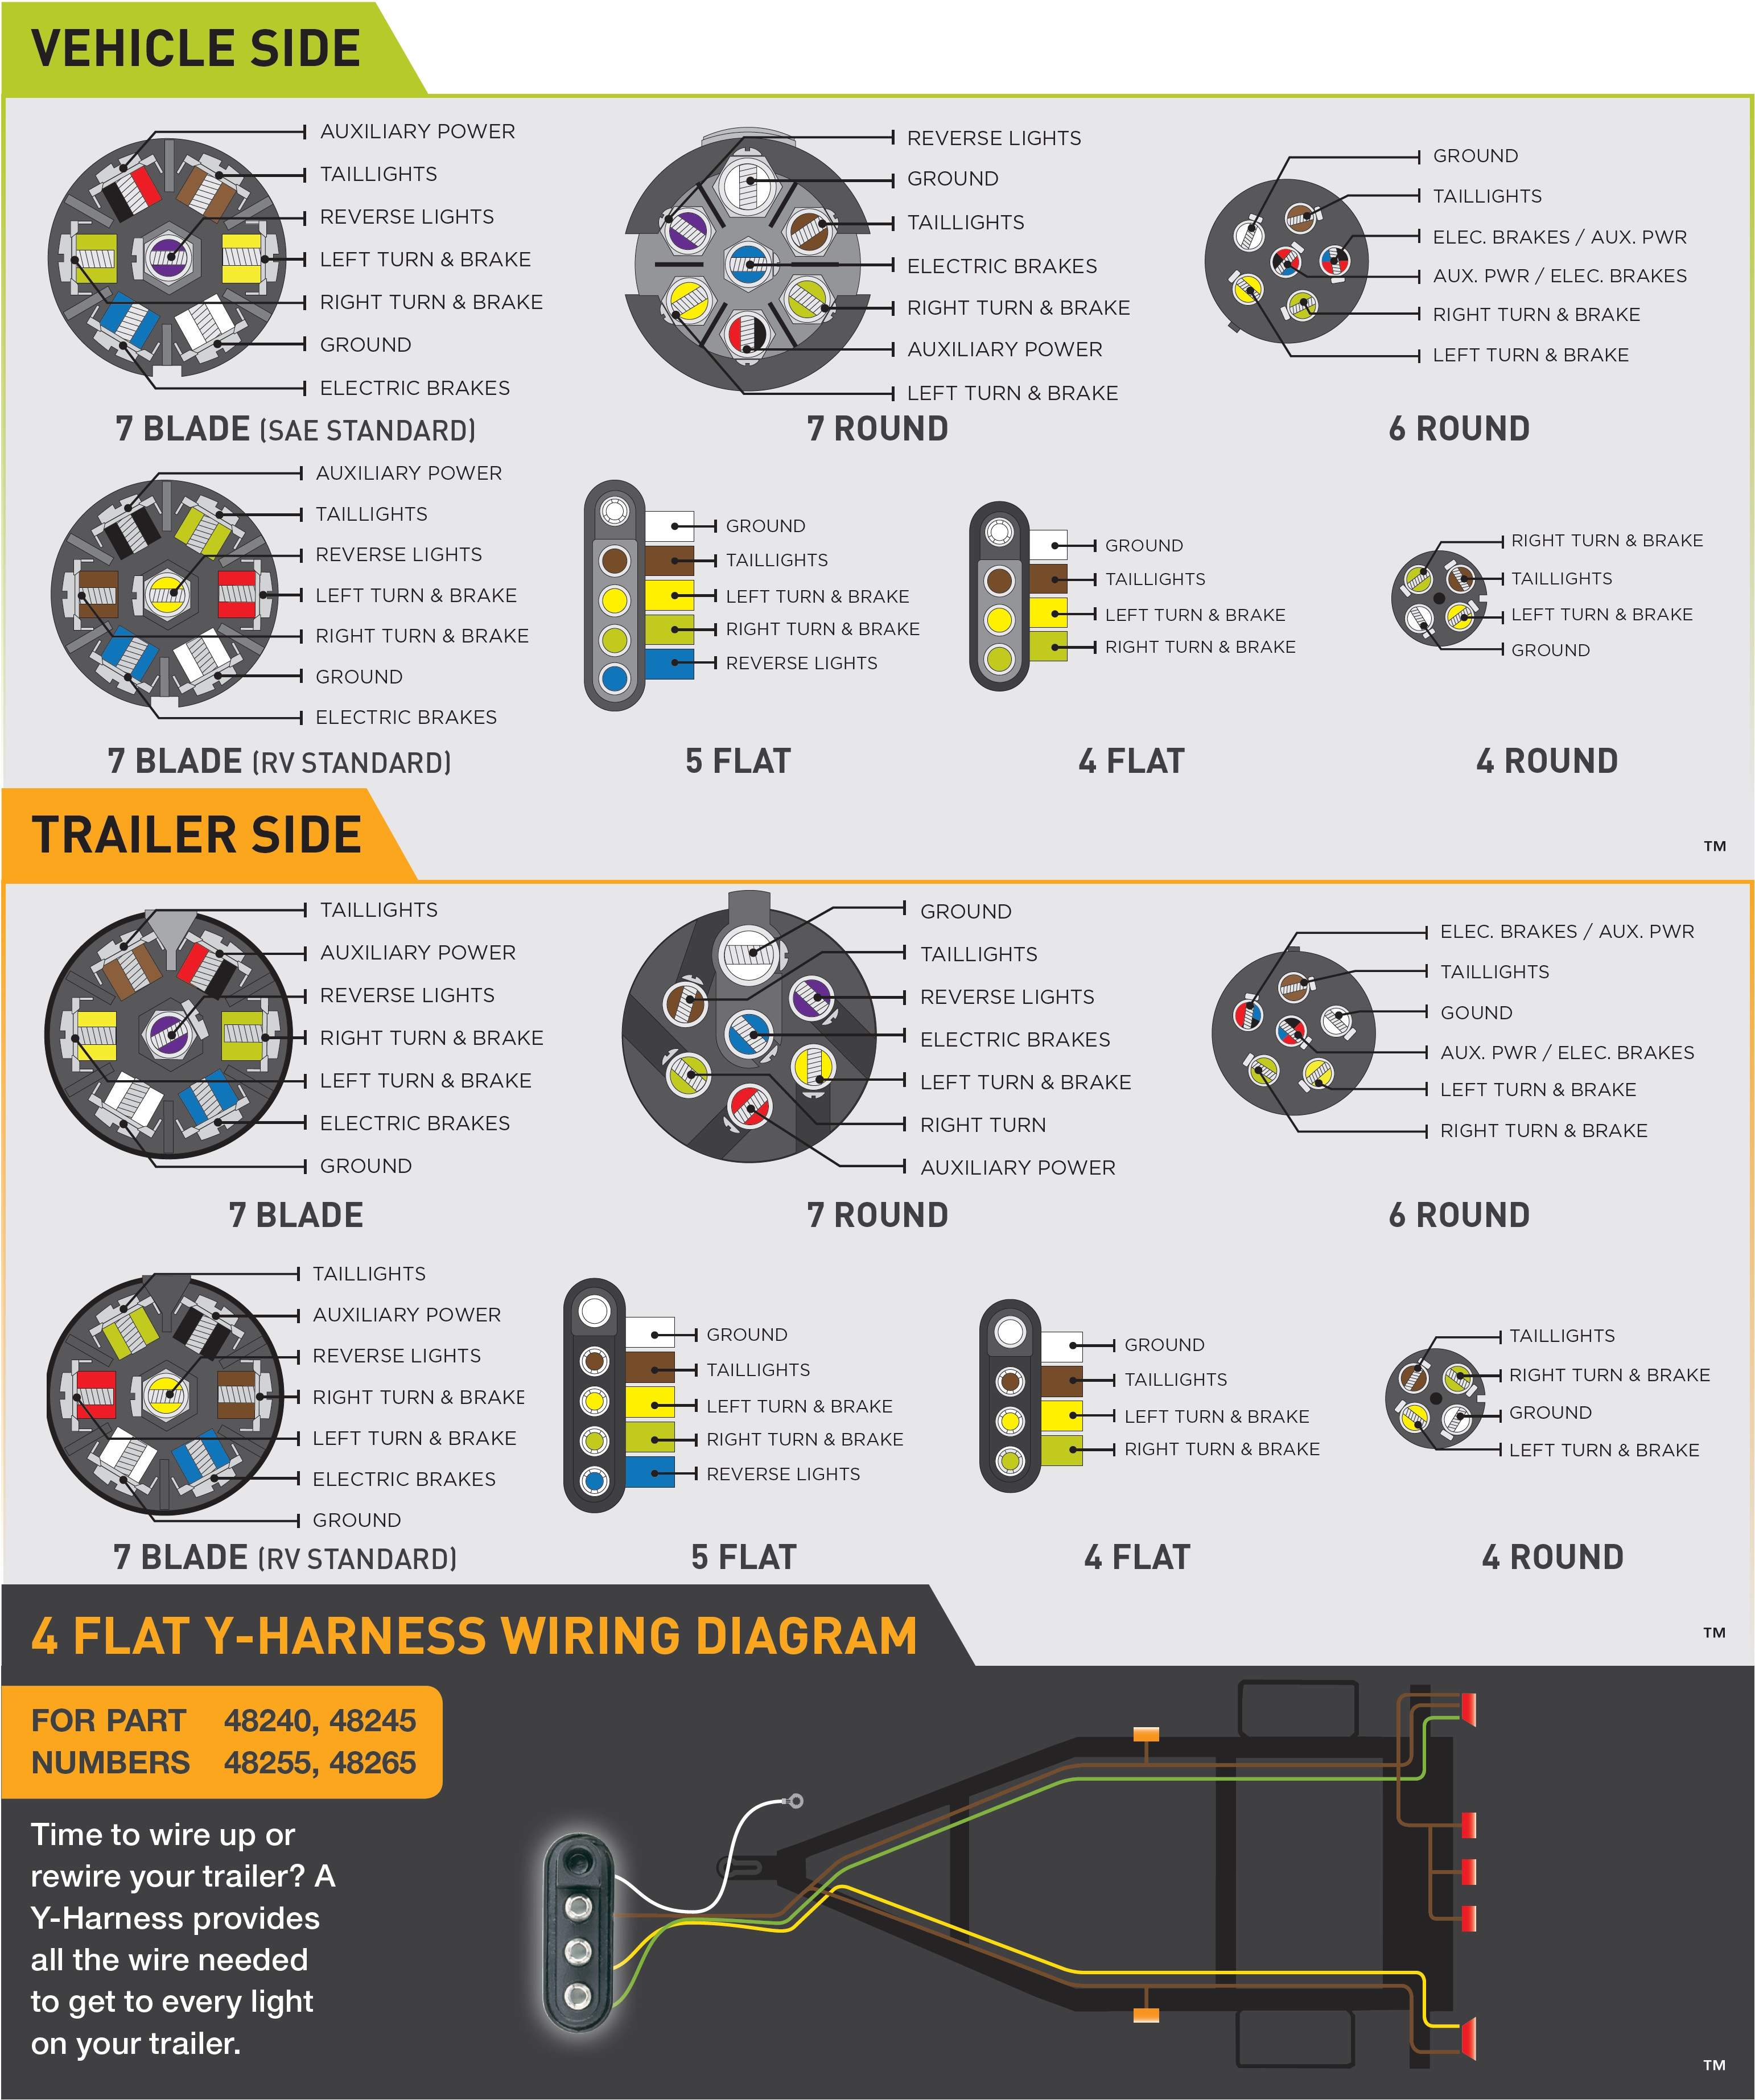 Wiring Guides - Wiring Harness Trailer Diagram